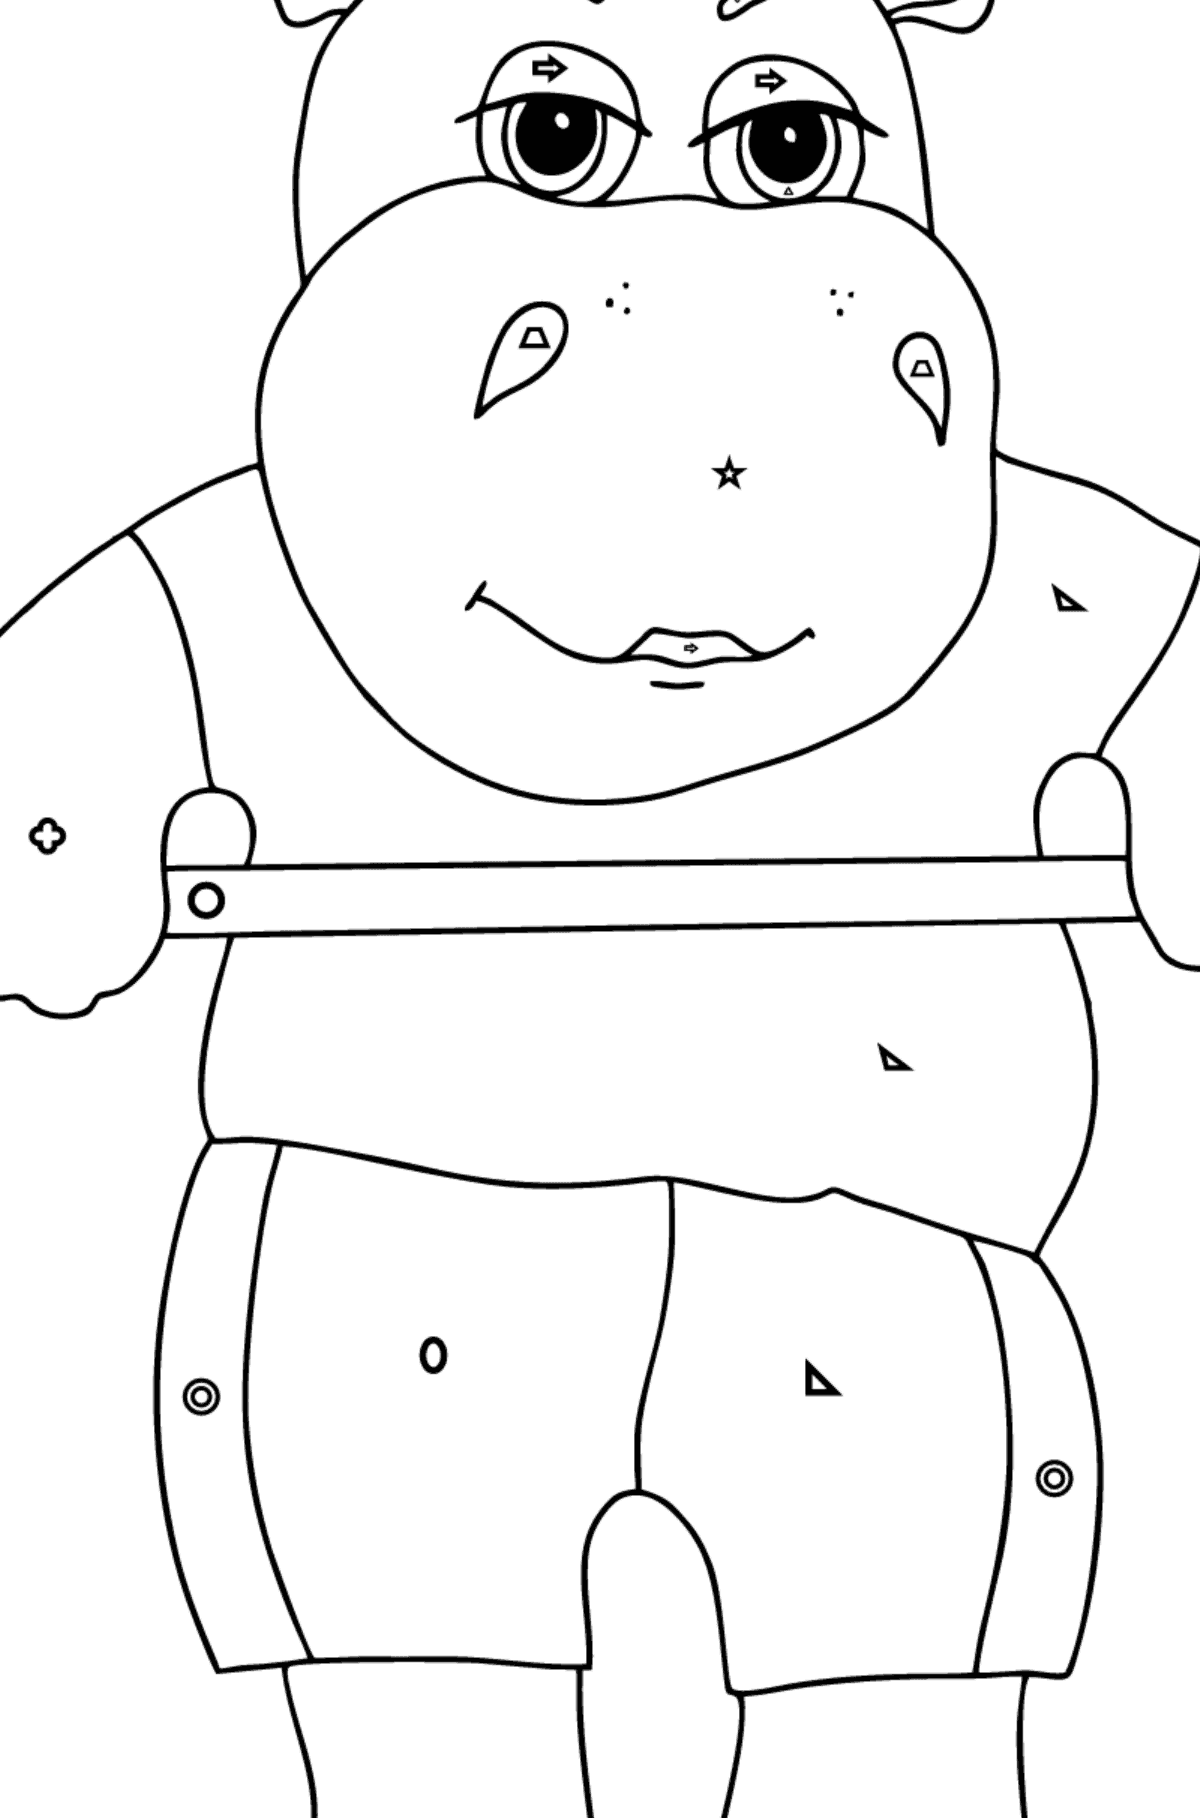 Coloring Page - A Hippo Lifts a Barbell for Kids  - Color by Geometric Shapes